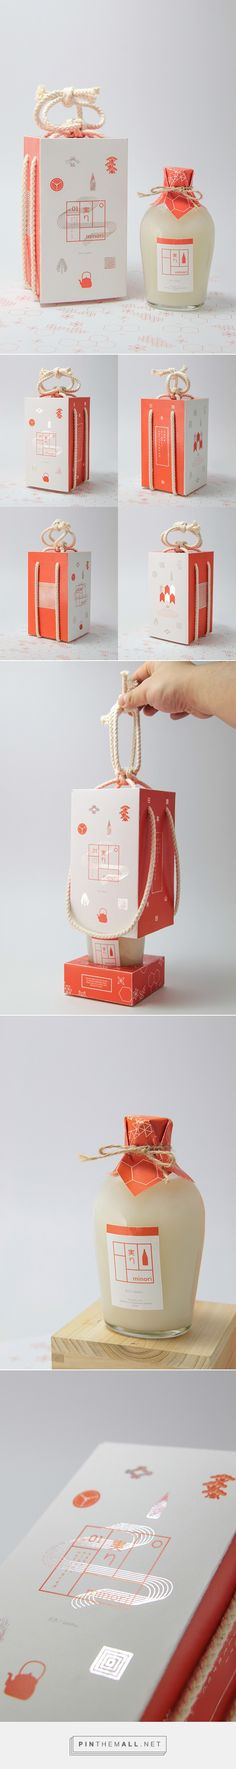 Minori Sake Packaging  by Michael Nguyen on Behance | Fivestar Branding – Design and Branding Agency & Inspiration Gallery